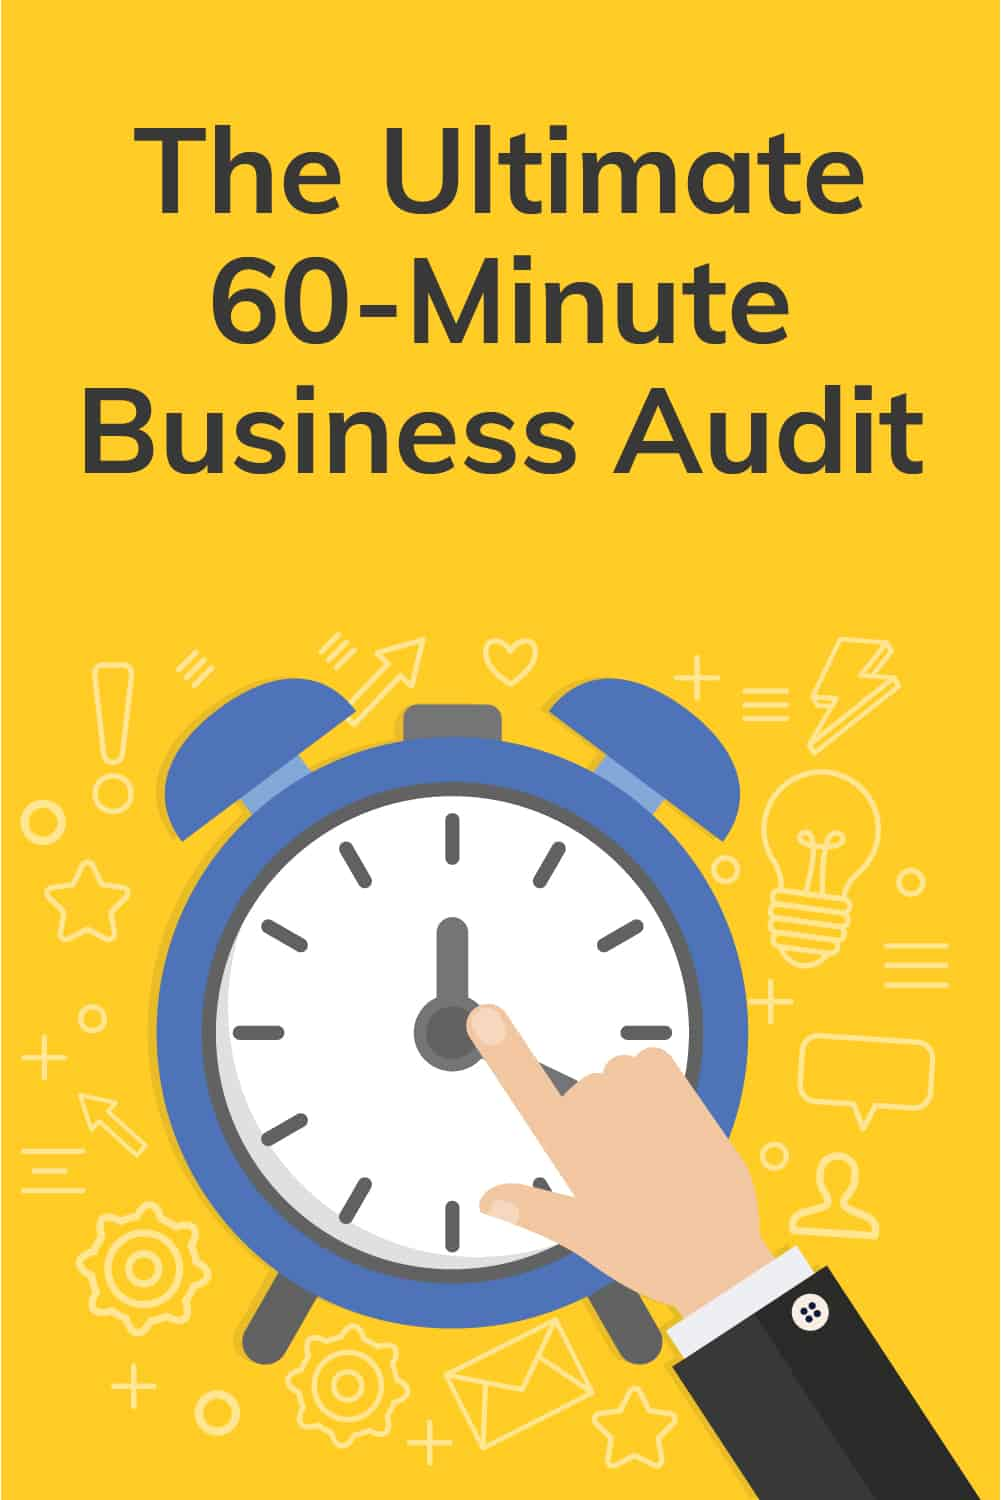 The Ultimate 60-Minute Business Audit via @scopedesign